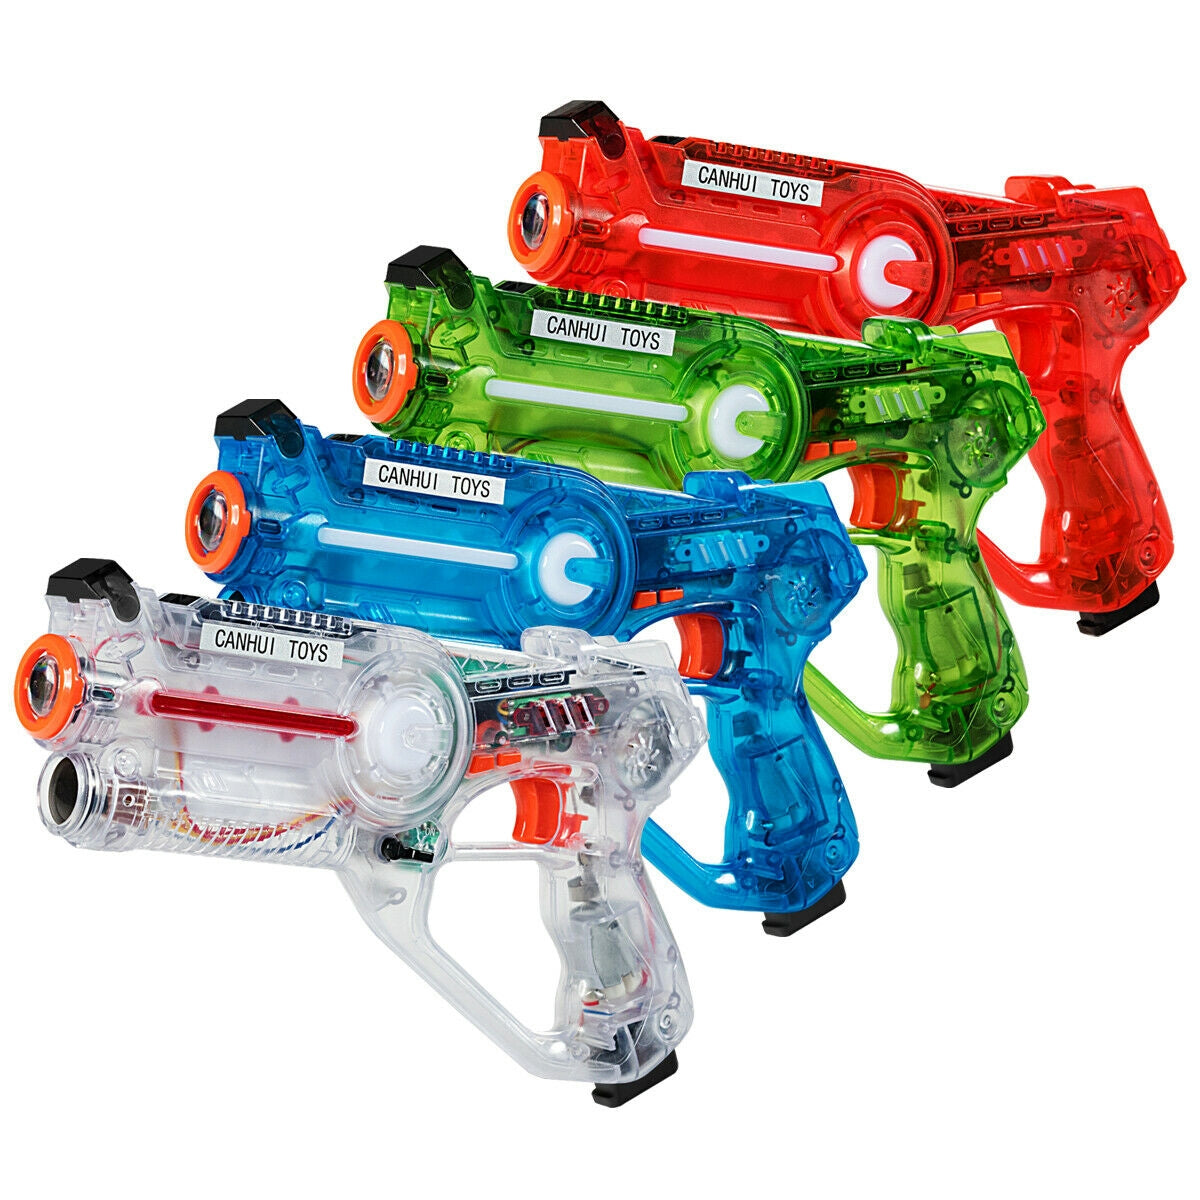 4-set Infrared Laser Tag Guns Battle Blasters Mega Pack C107 - Baby World Inc